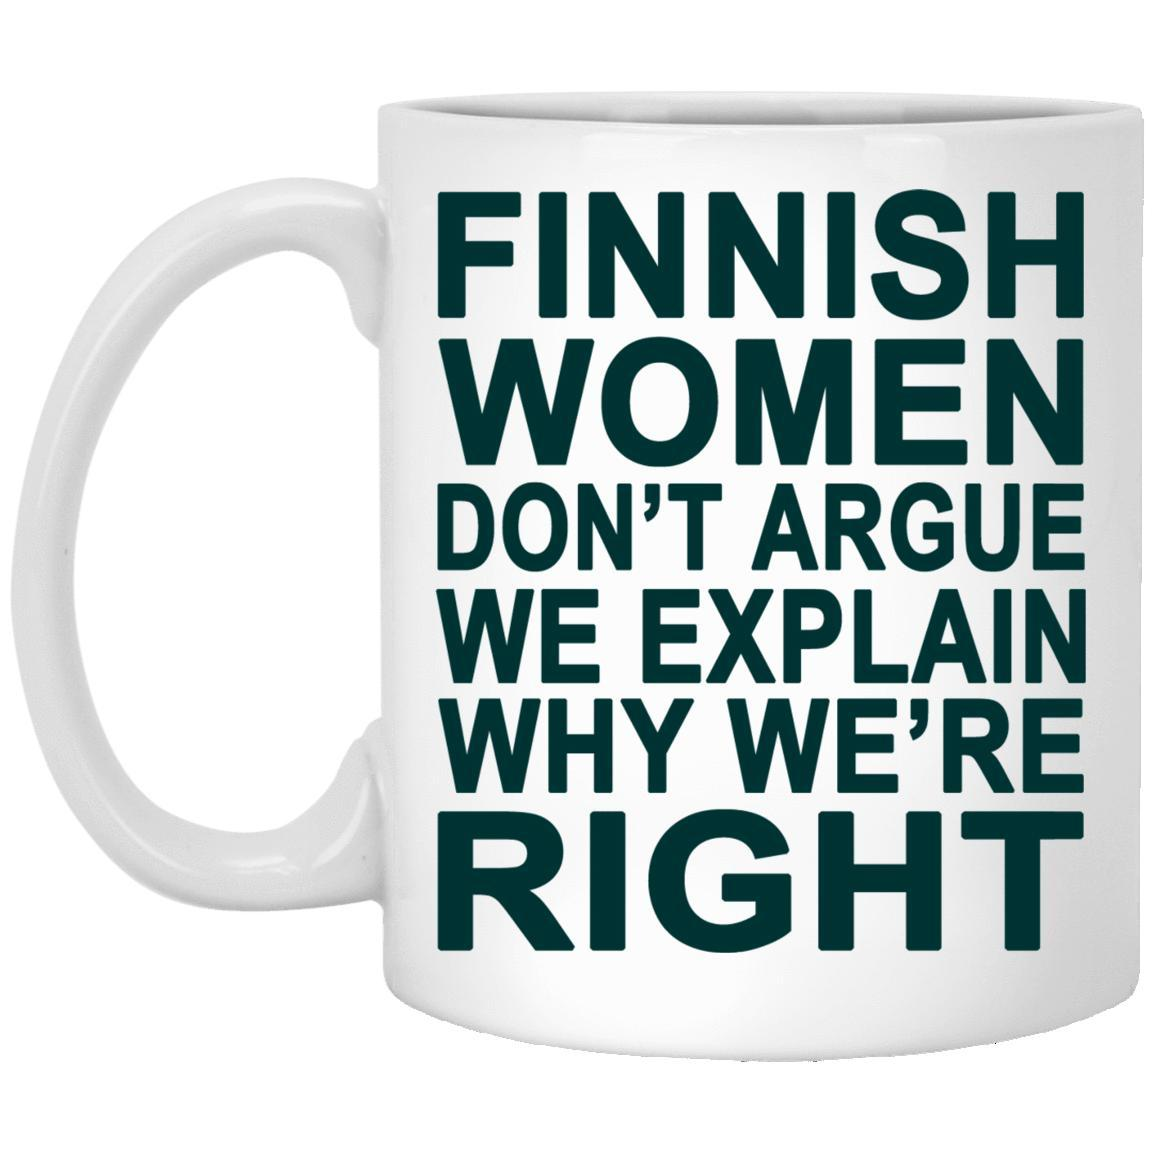 Finnish Women Don't Argue Mugs